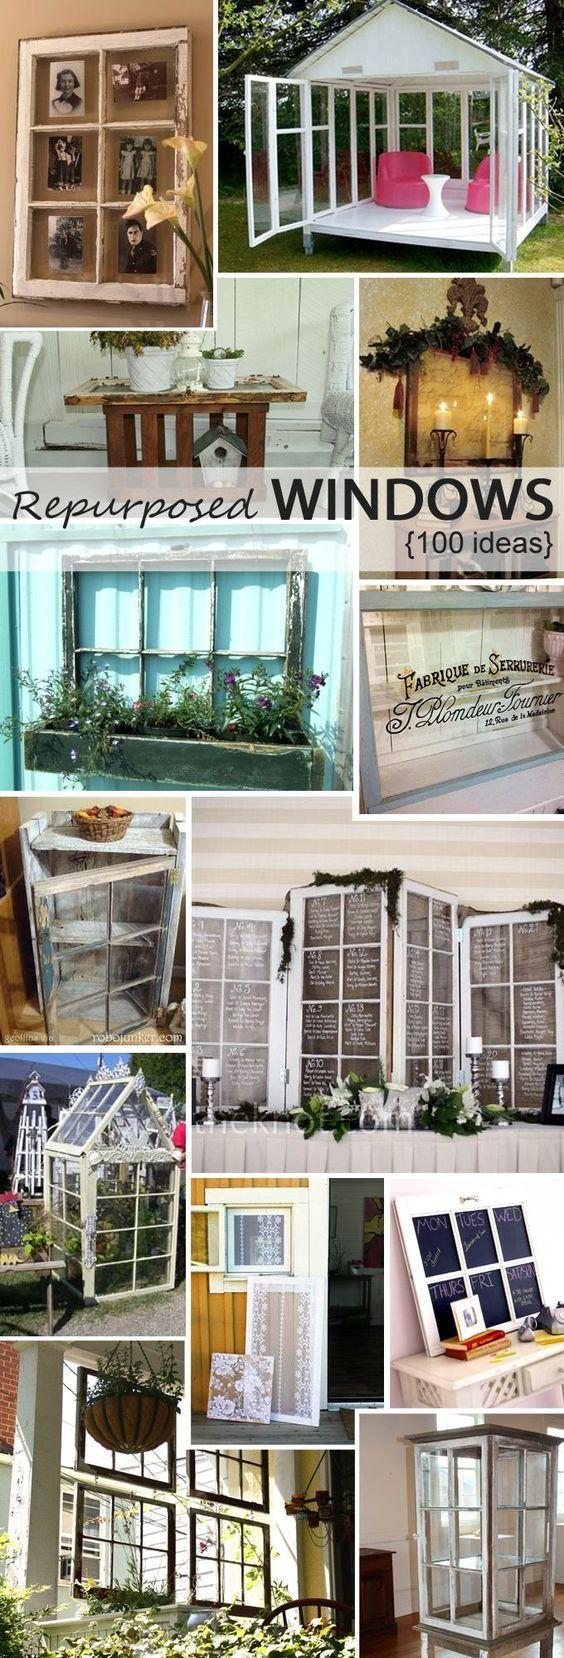 100 ideas. Repurposed windows. Bought 2 today @ a yard sale and trying to decide how to best use them :)